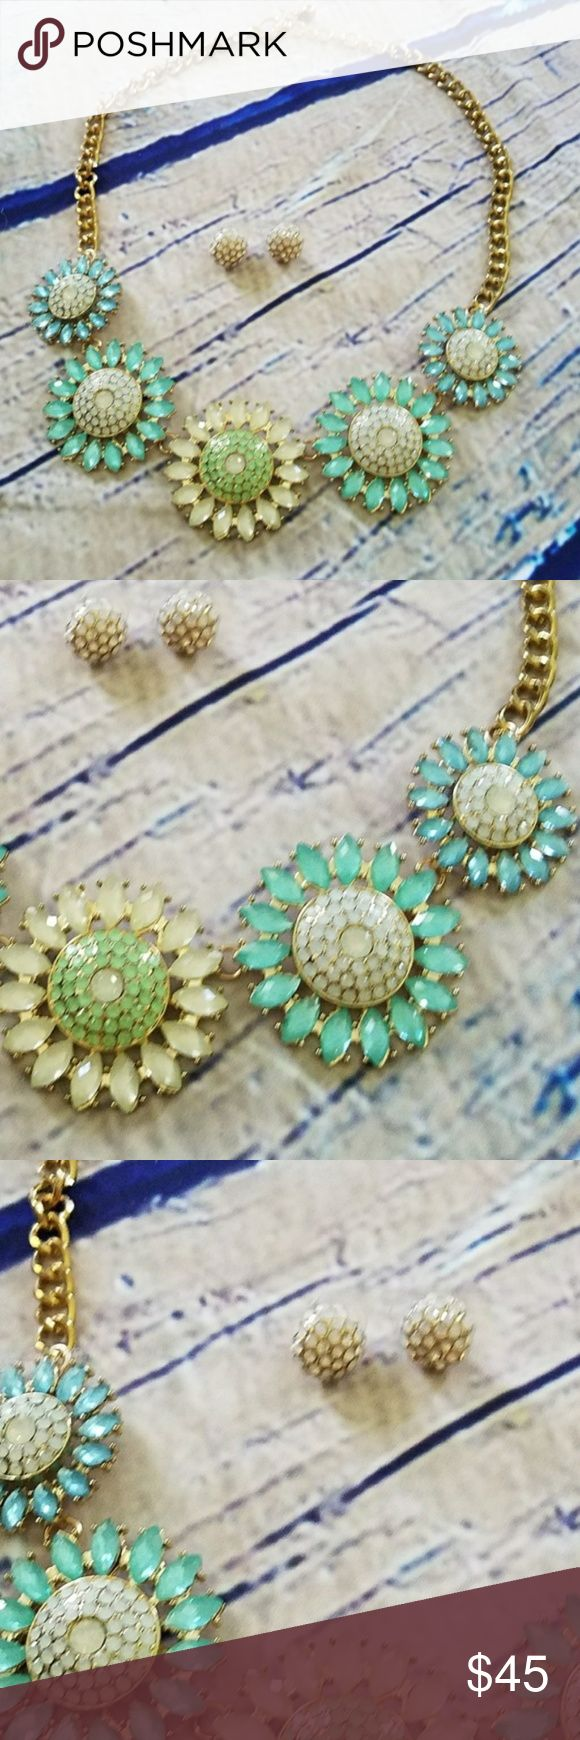 Flower Statement Necklace and earing set Flower Statement Necklace. New without tags. Never worn. Light blue hues mixed with off white and pale green to create the flowers of this outfit maker statement necklace. Gold hardware. Claps closure. Cluster stud matching earrings. Jewelry Necklaces